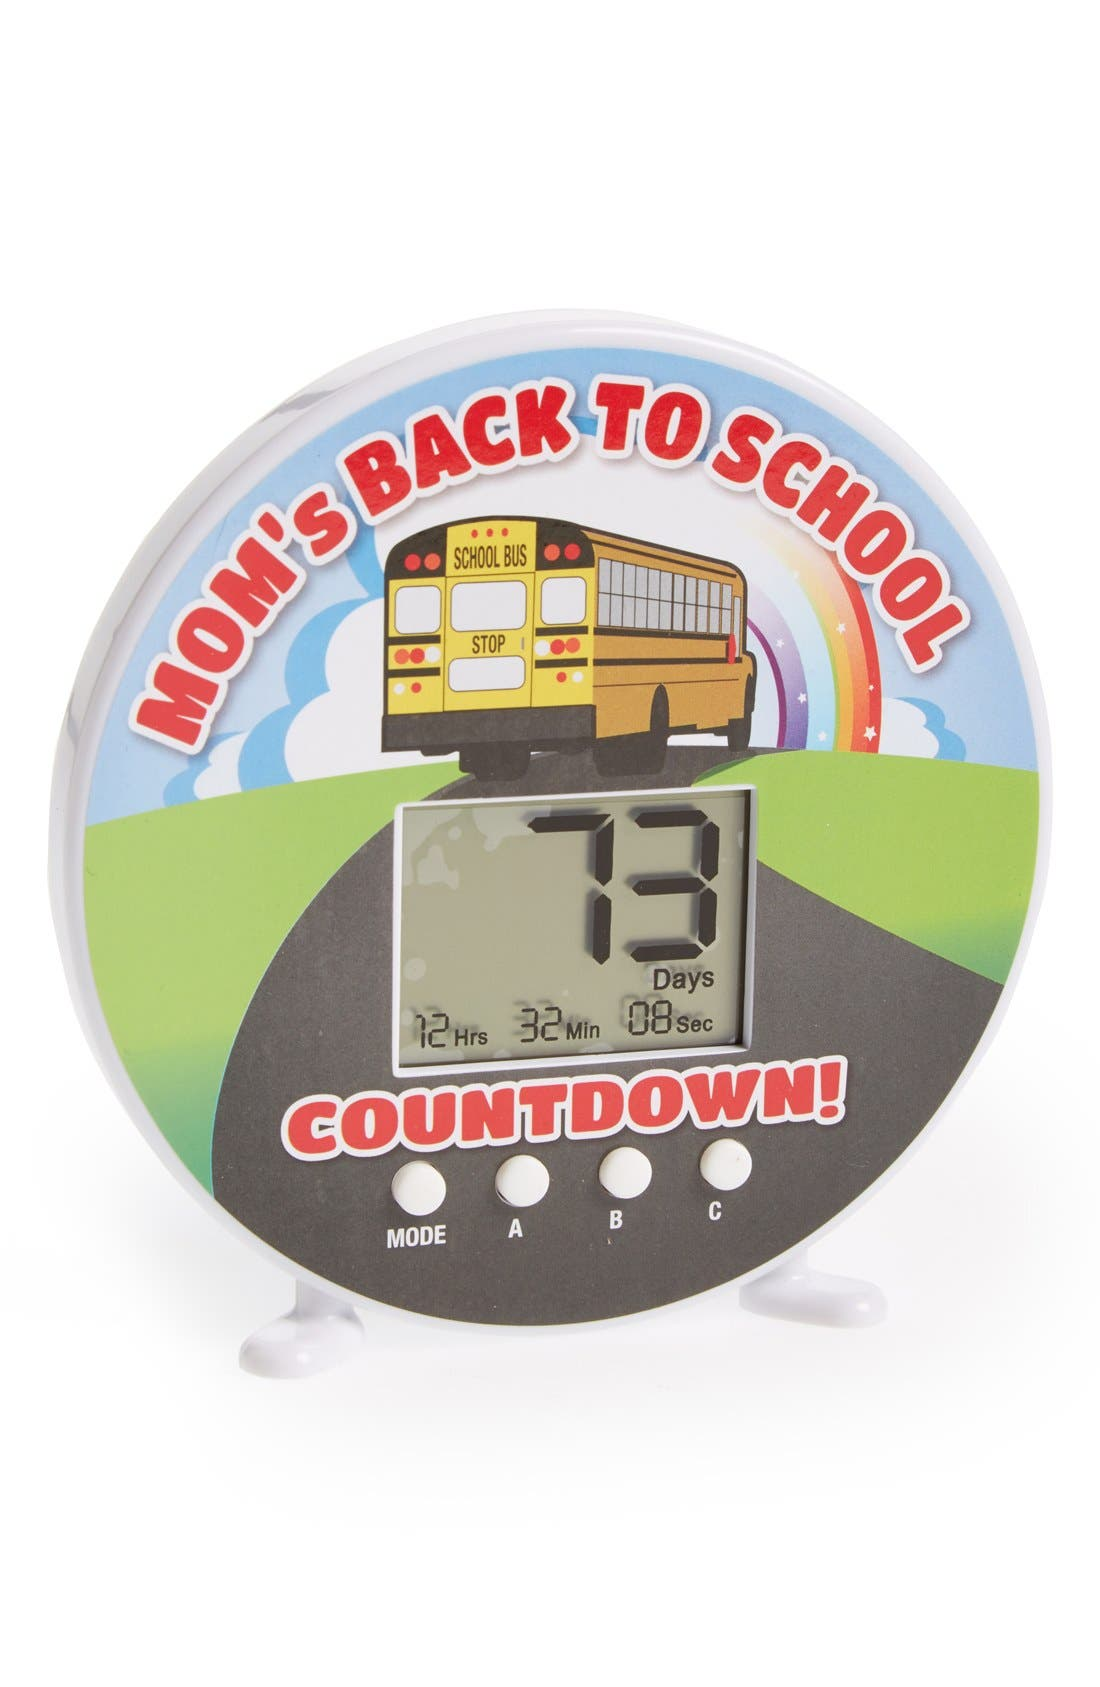 Alternate Image 1 Selected - Big Mouth Toys 'Mom's Back to School Countdown' Timer